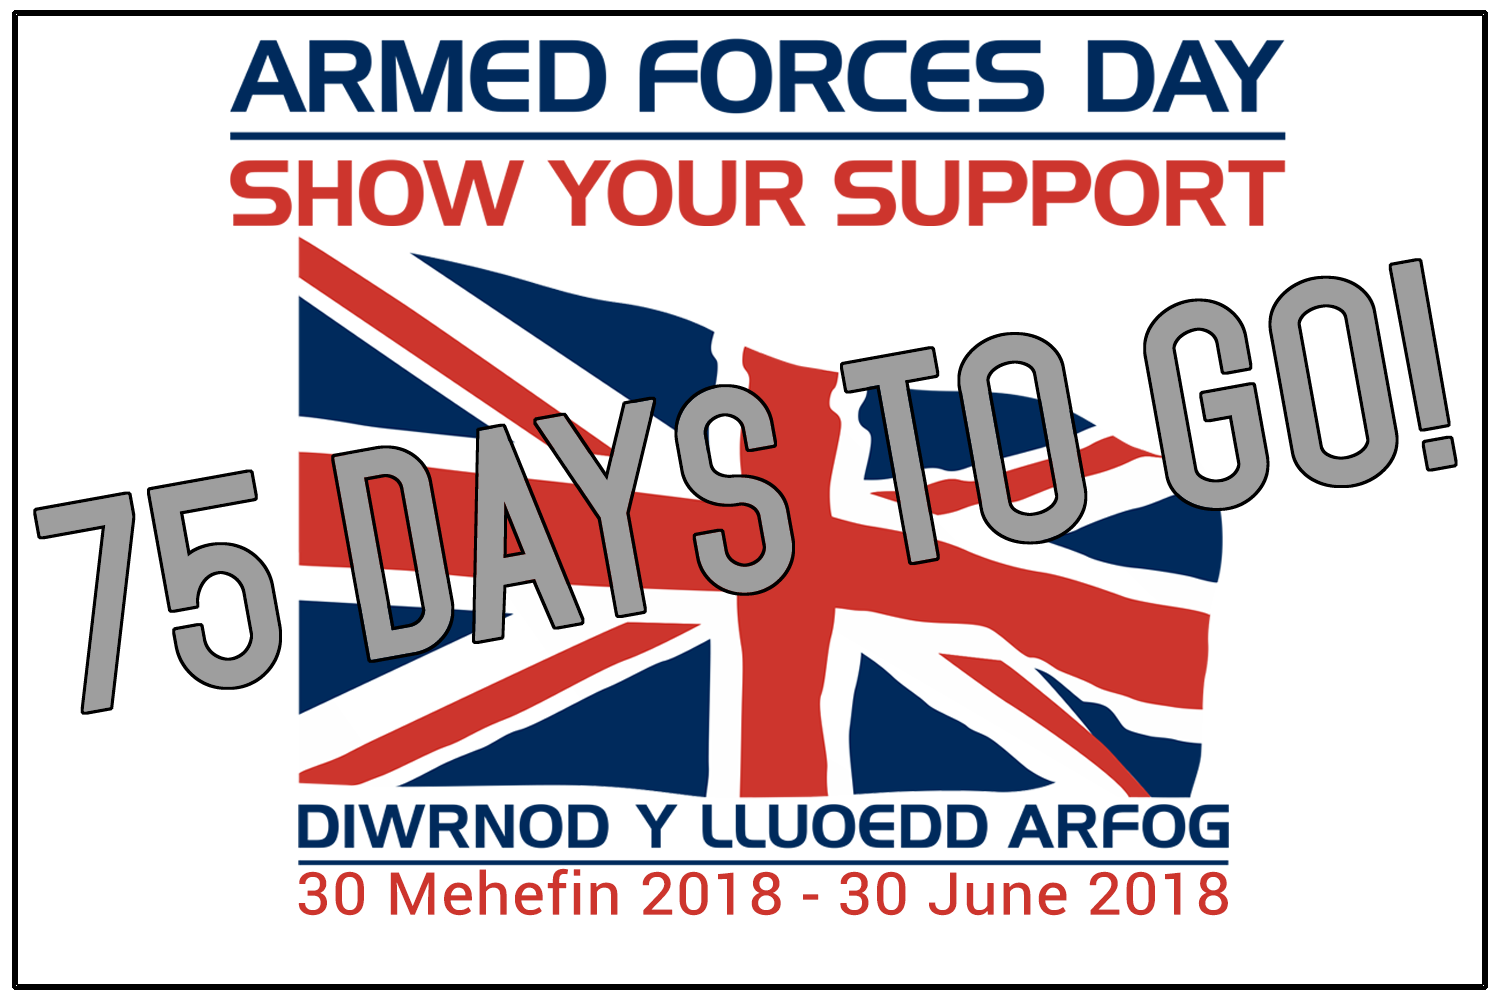 Armed Forces Day - 75 days to go